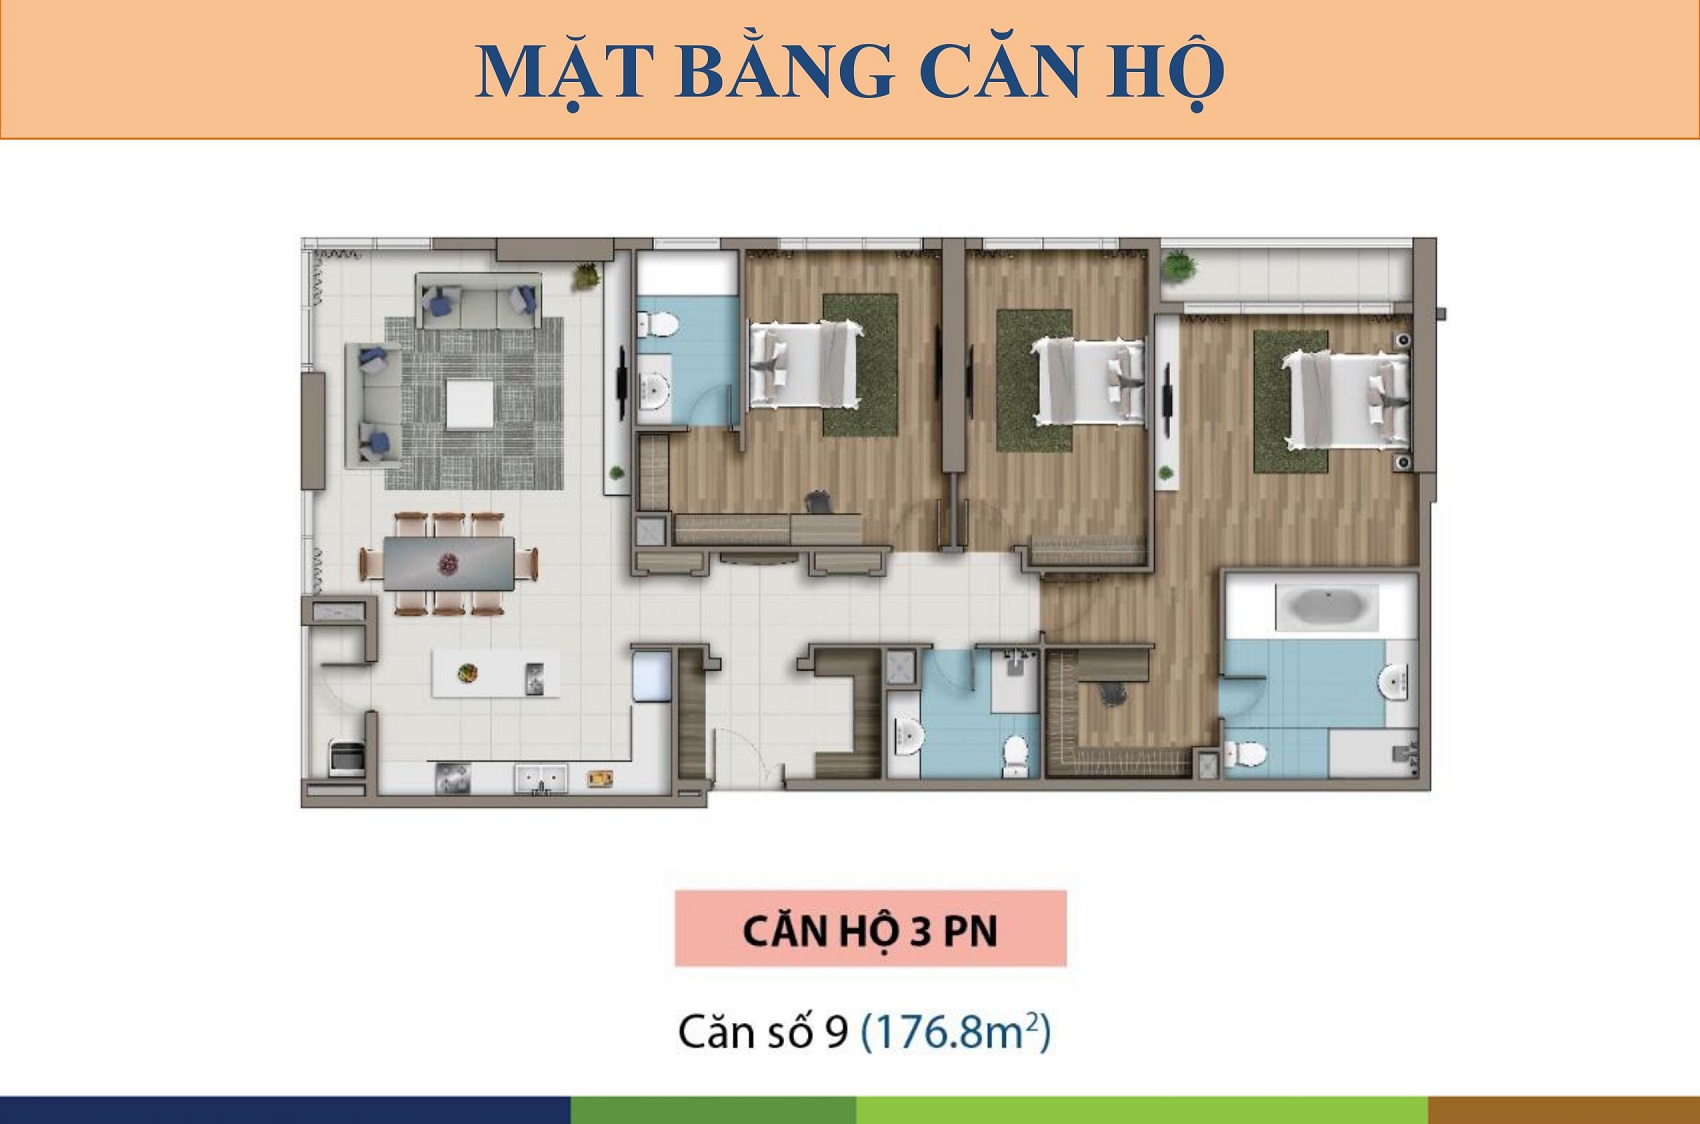 mat-bang-can-ho-saigon-royal-3